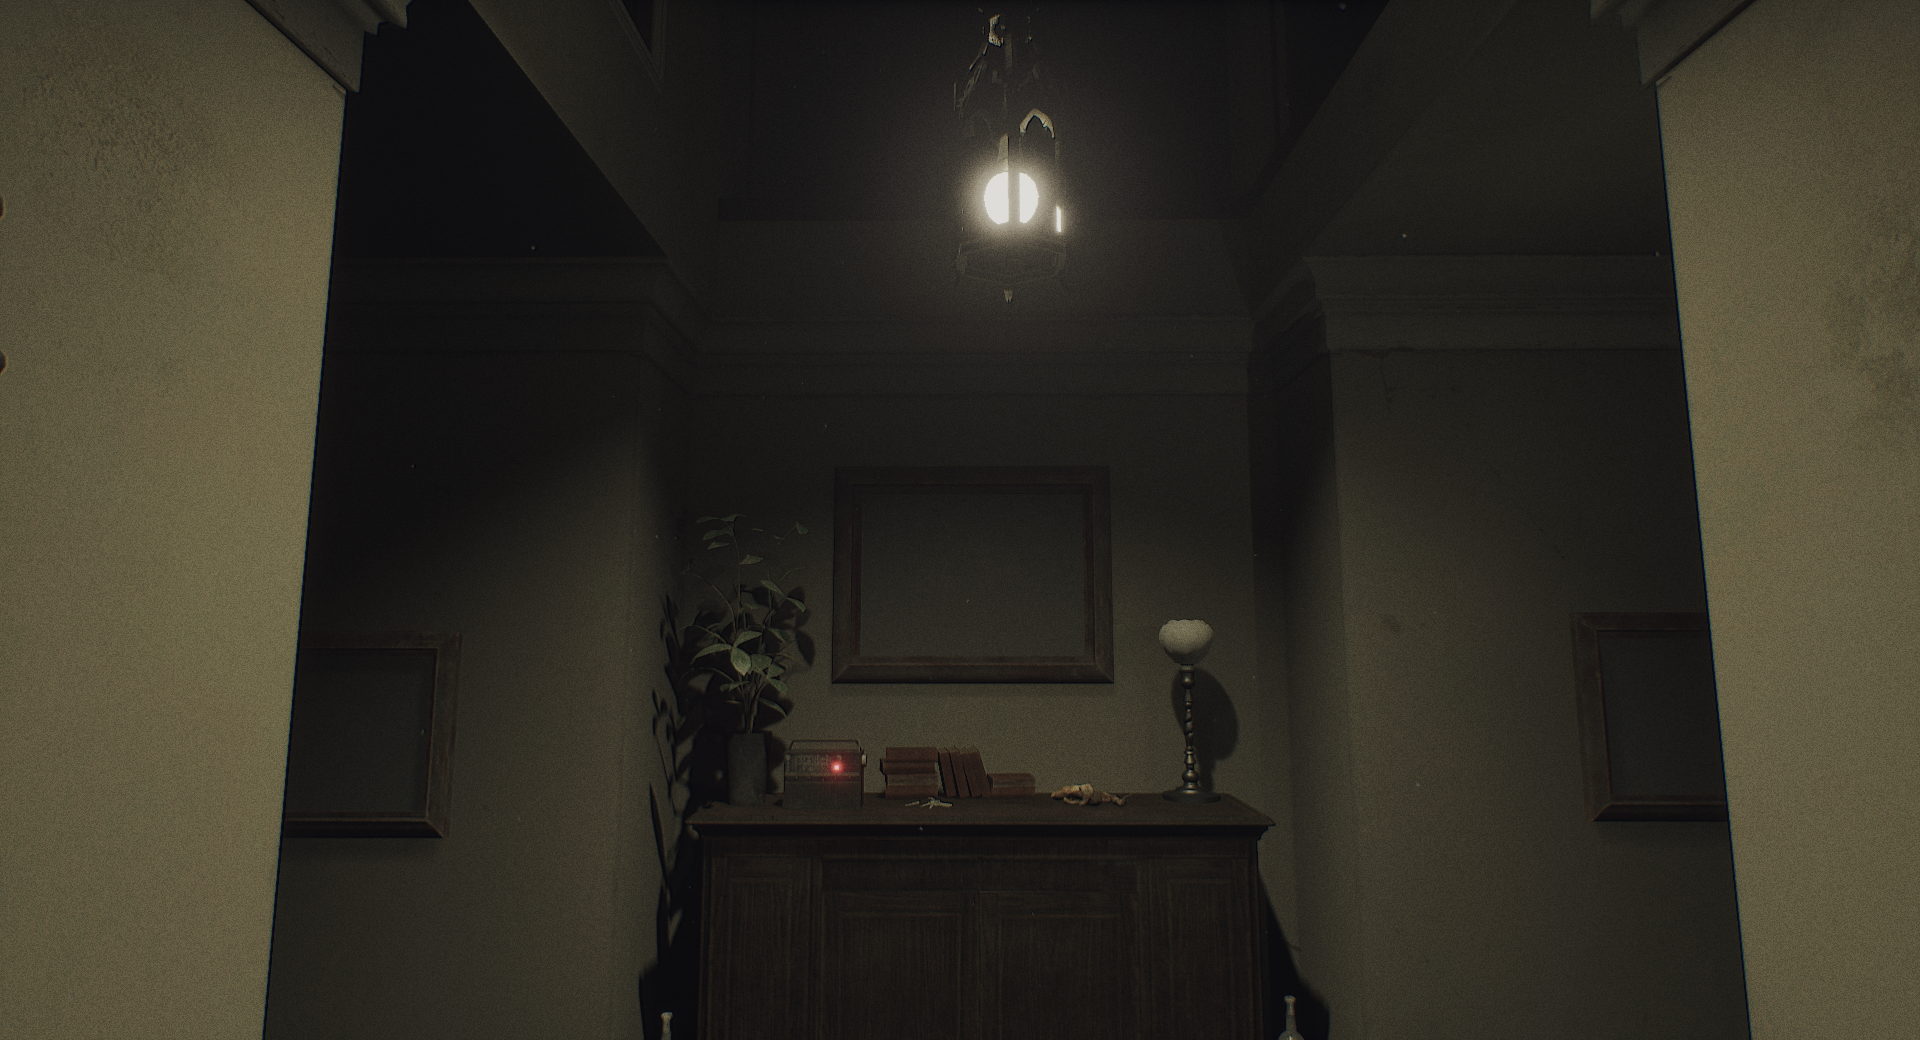 P.T Port Project